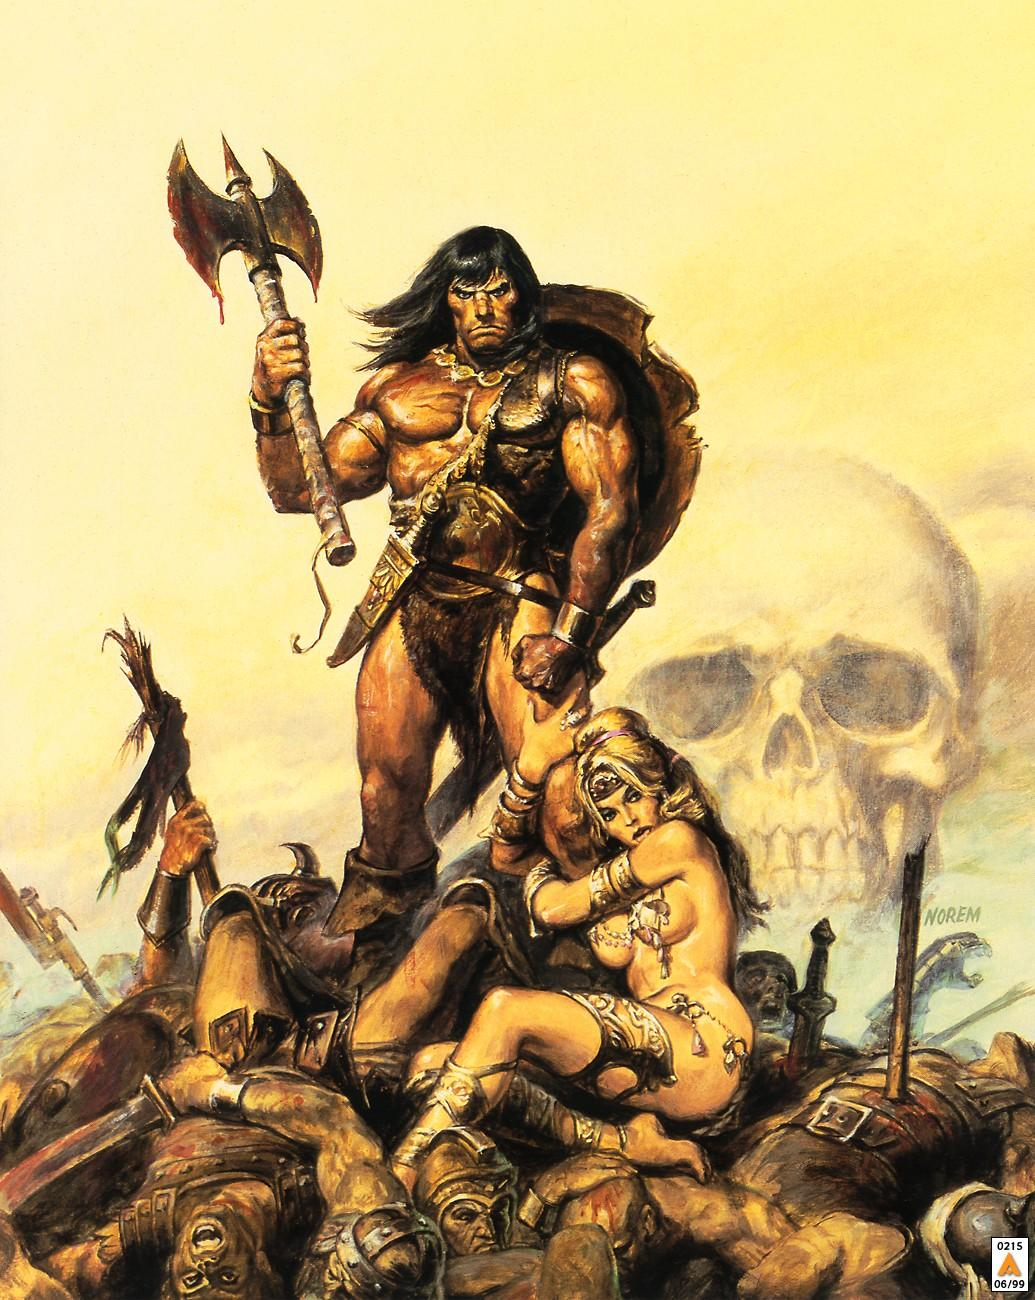 https://i1.wp.com/cdn.counter-currents.com/wp-content/uploads/2011/08/Conan-the-Barbarian.jpg